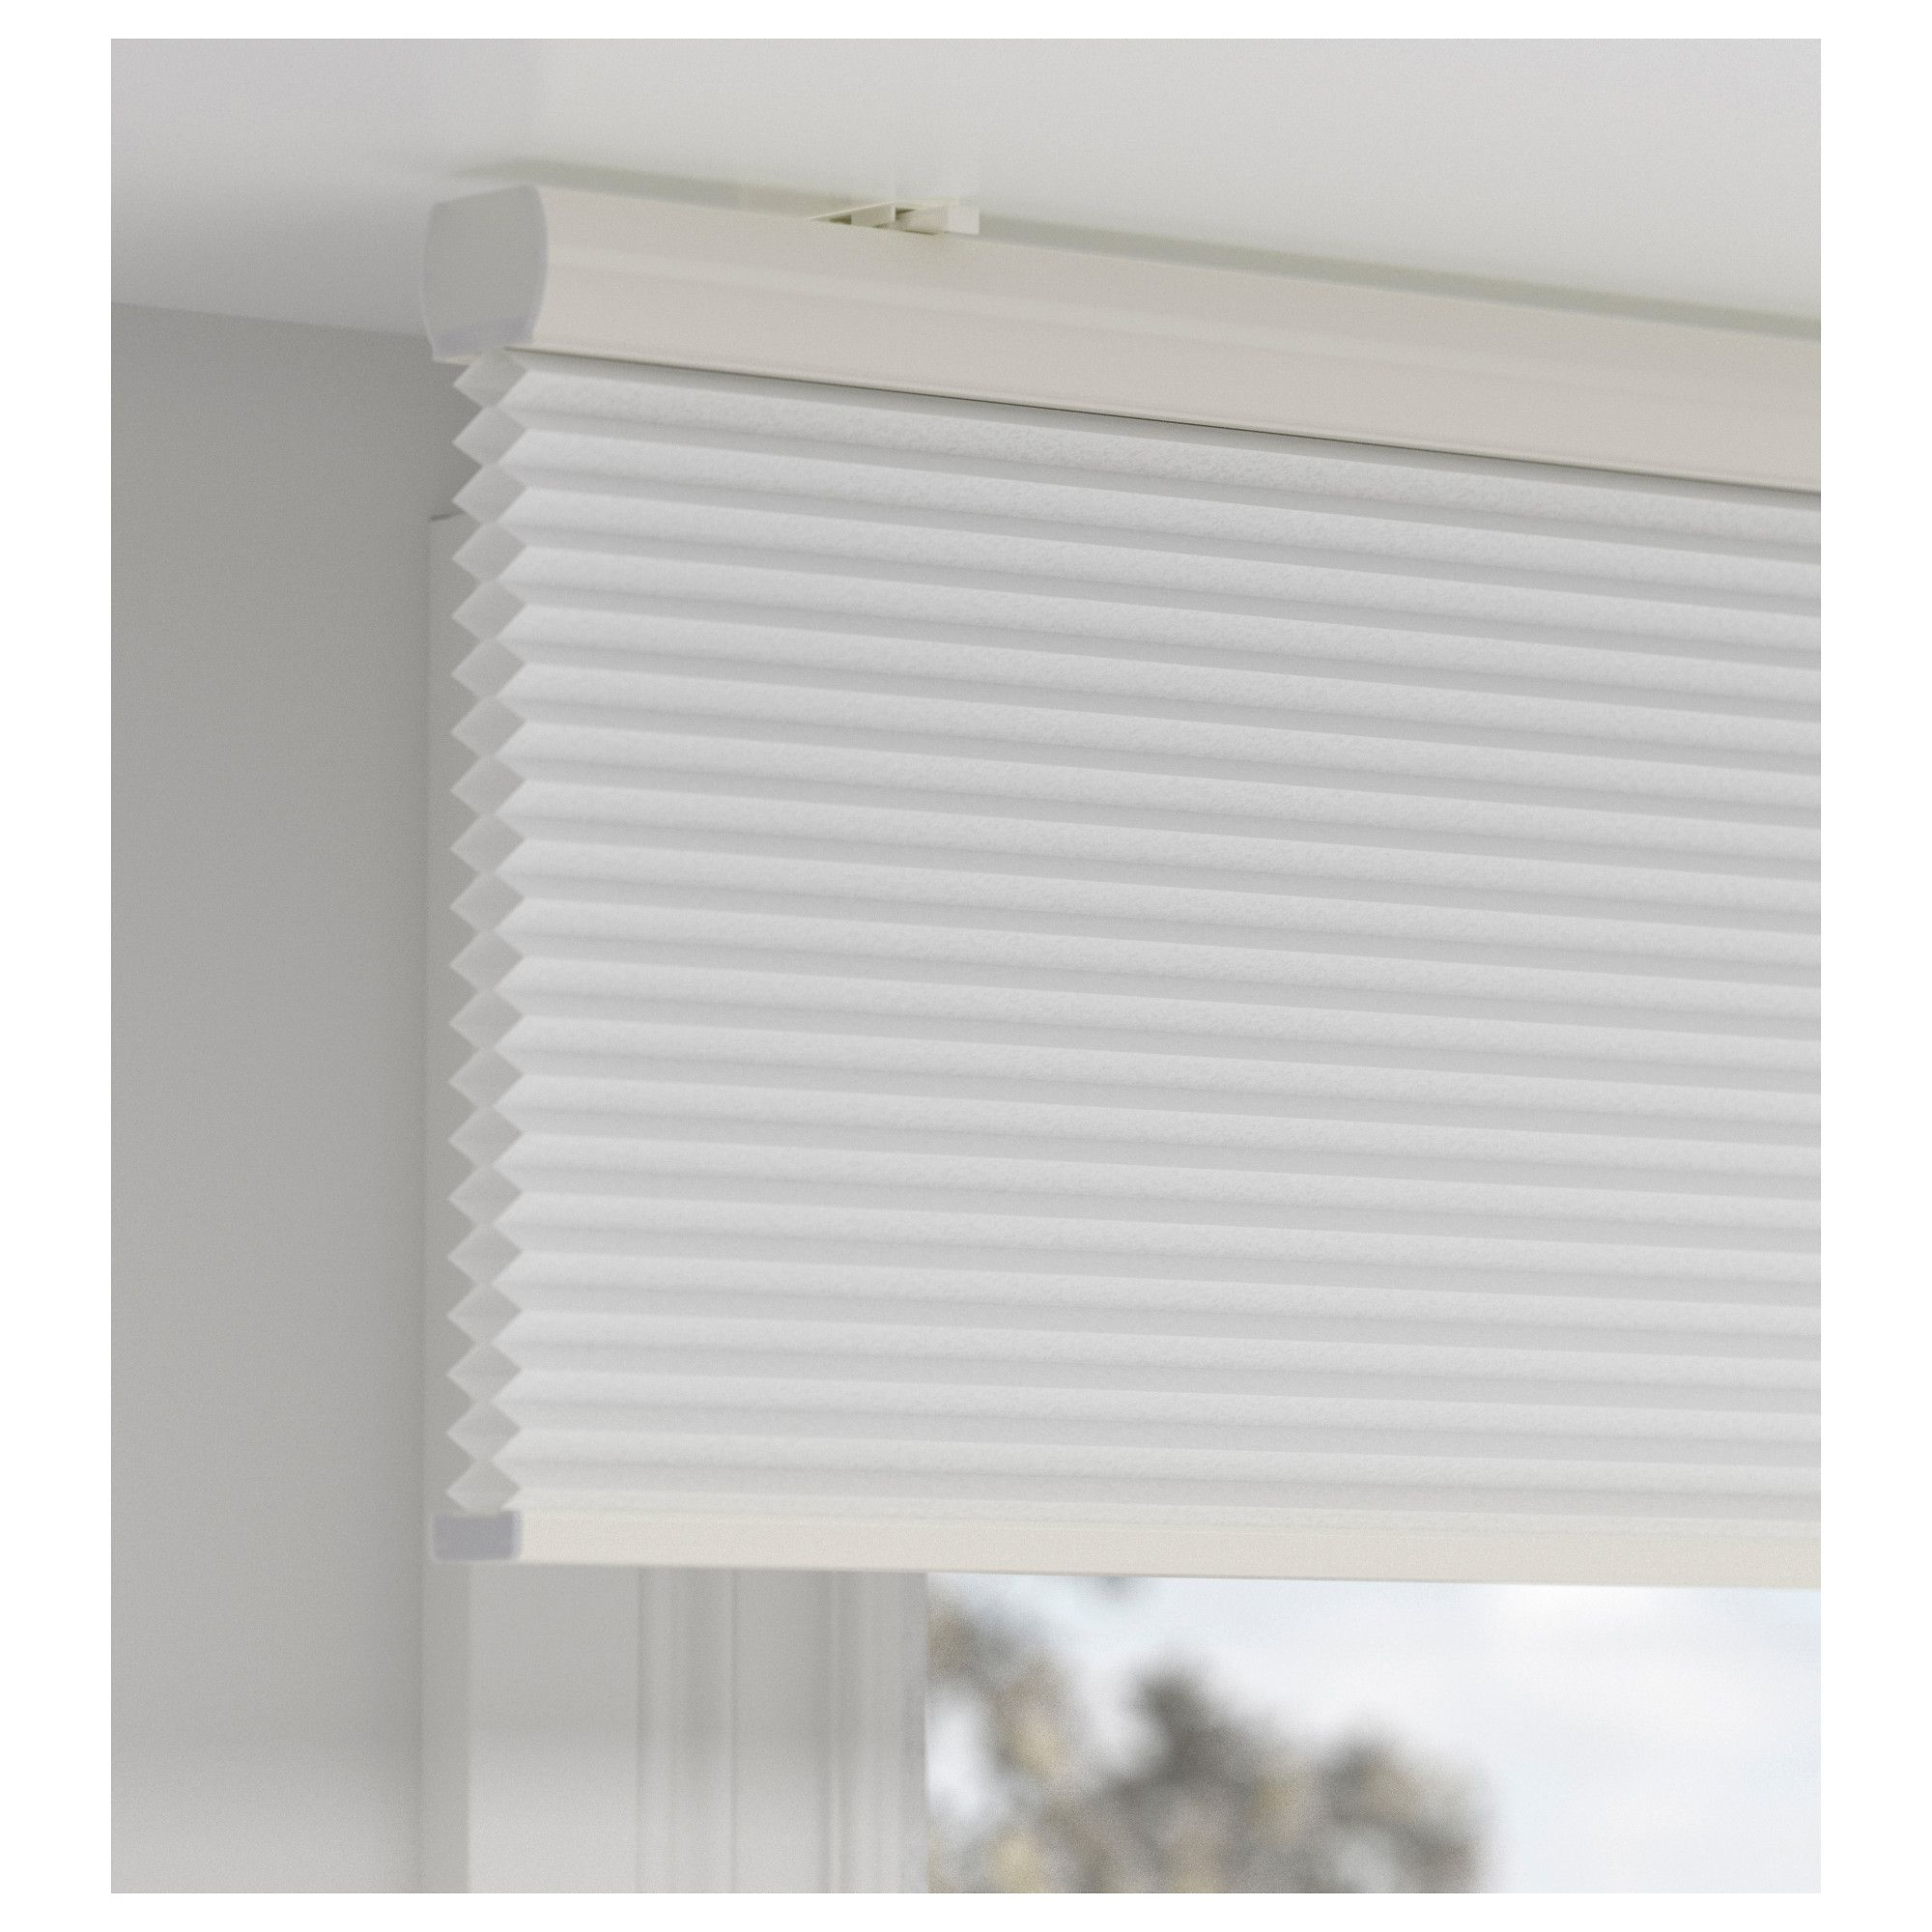 meme your outdoor com source uncategorized window ikea blinds aweshomey bamboo attachment